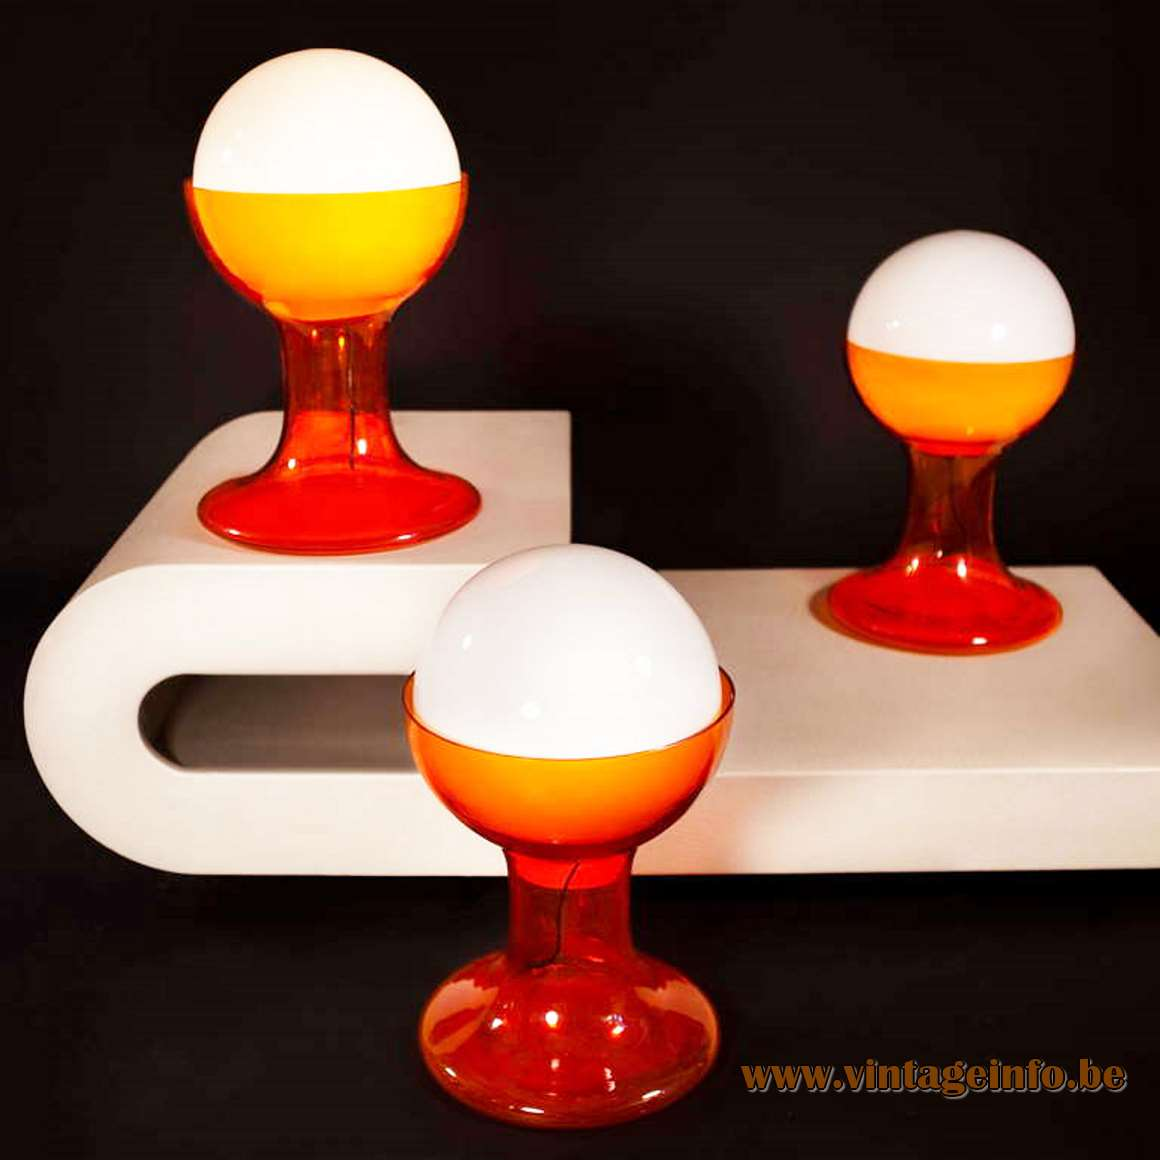 Carlo Nason AV Mazzega LT216 Table Lamp 1968 design big orange glass opal globe 1960s 1970s